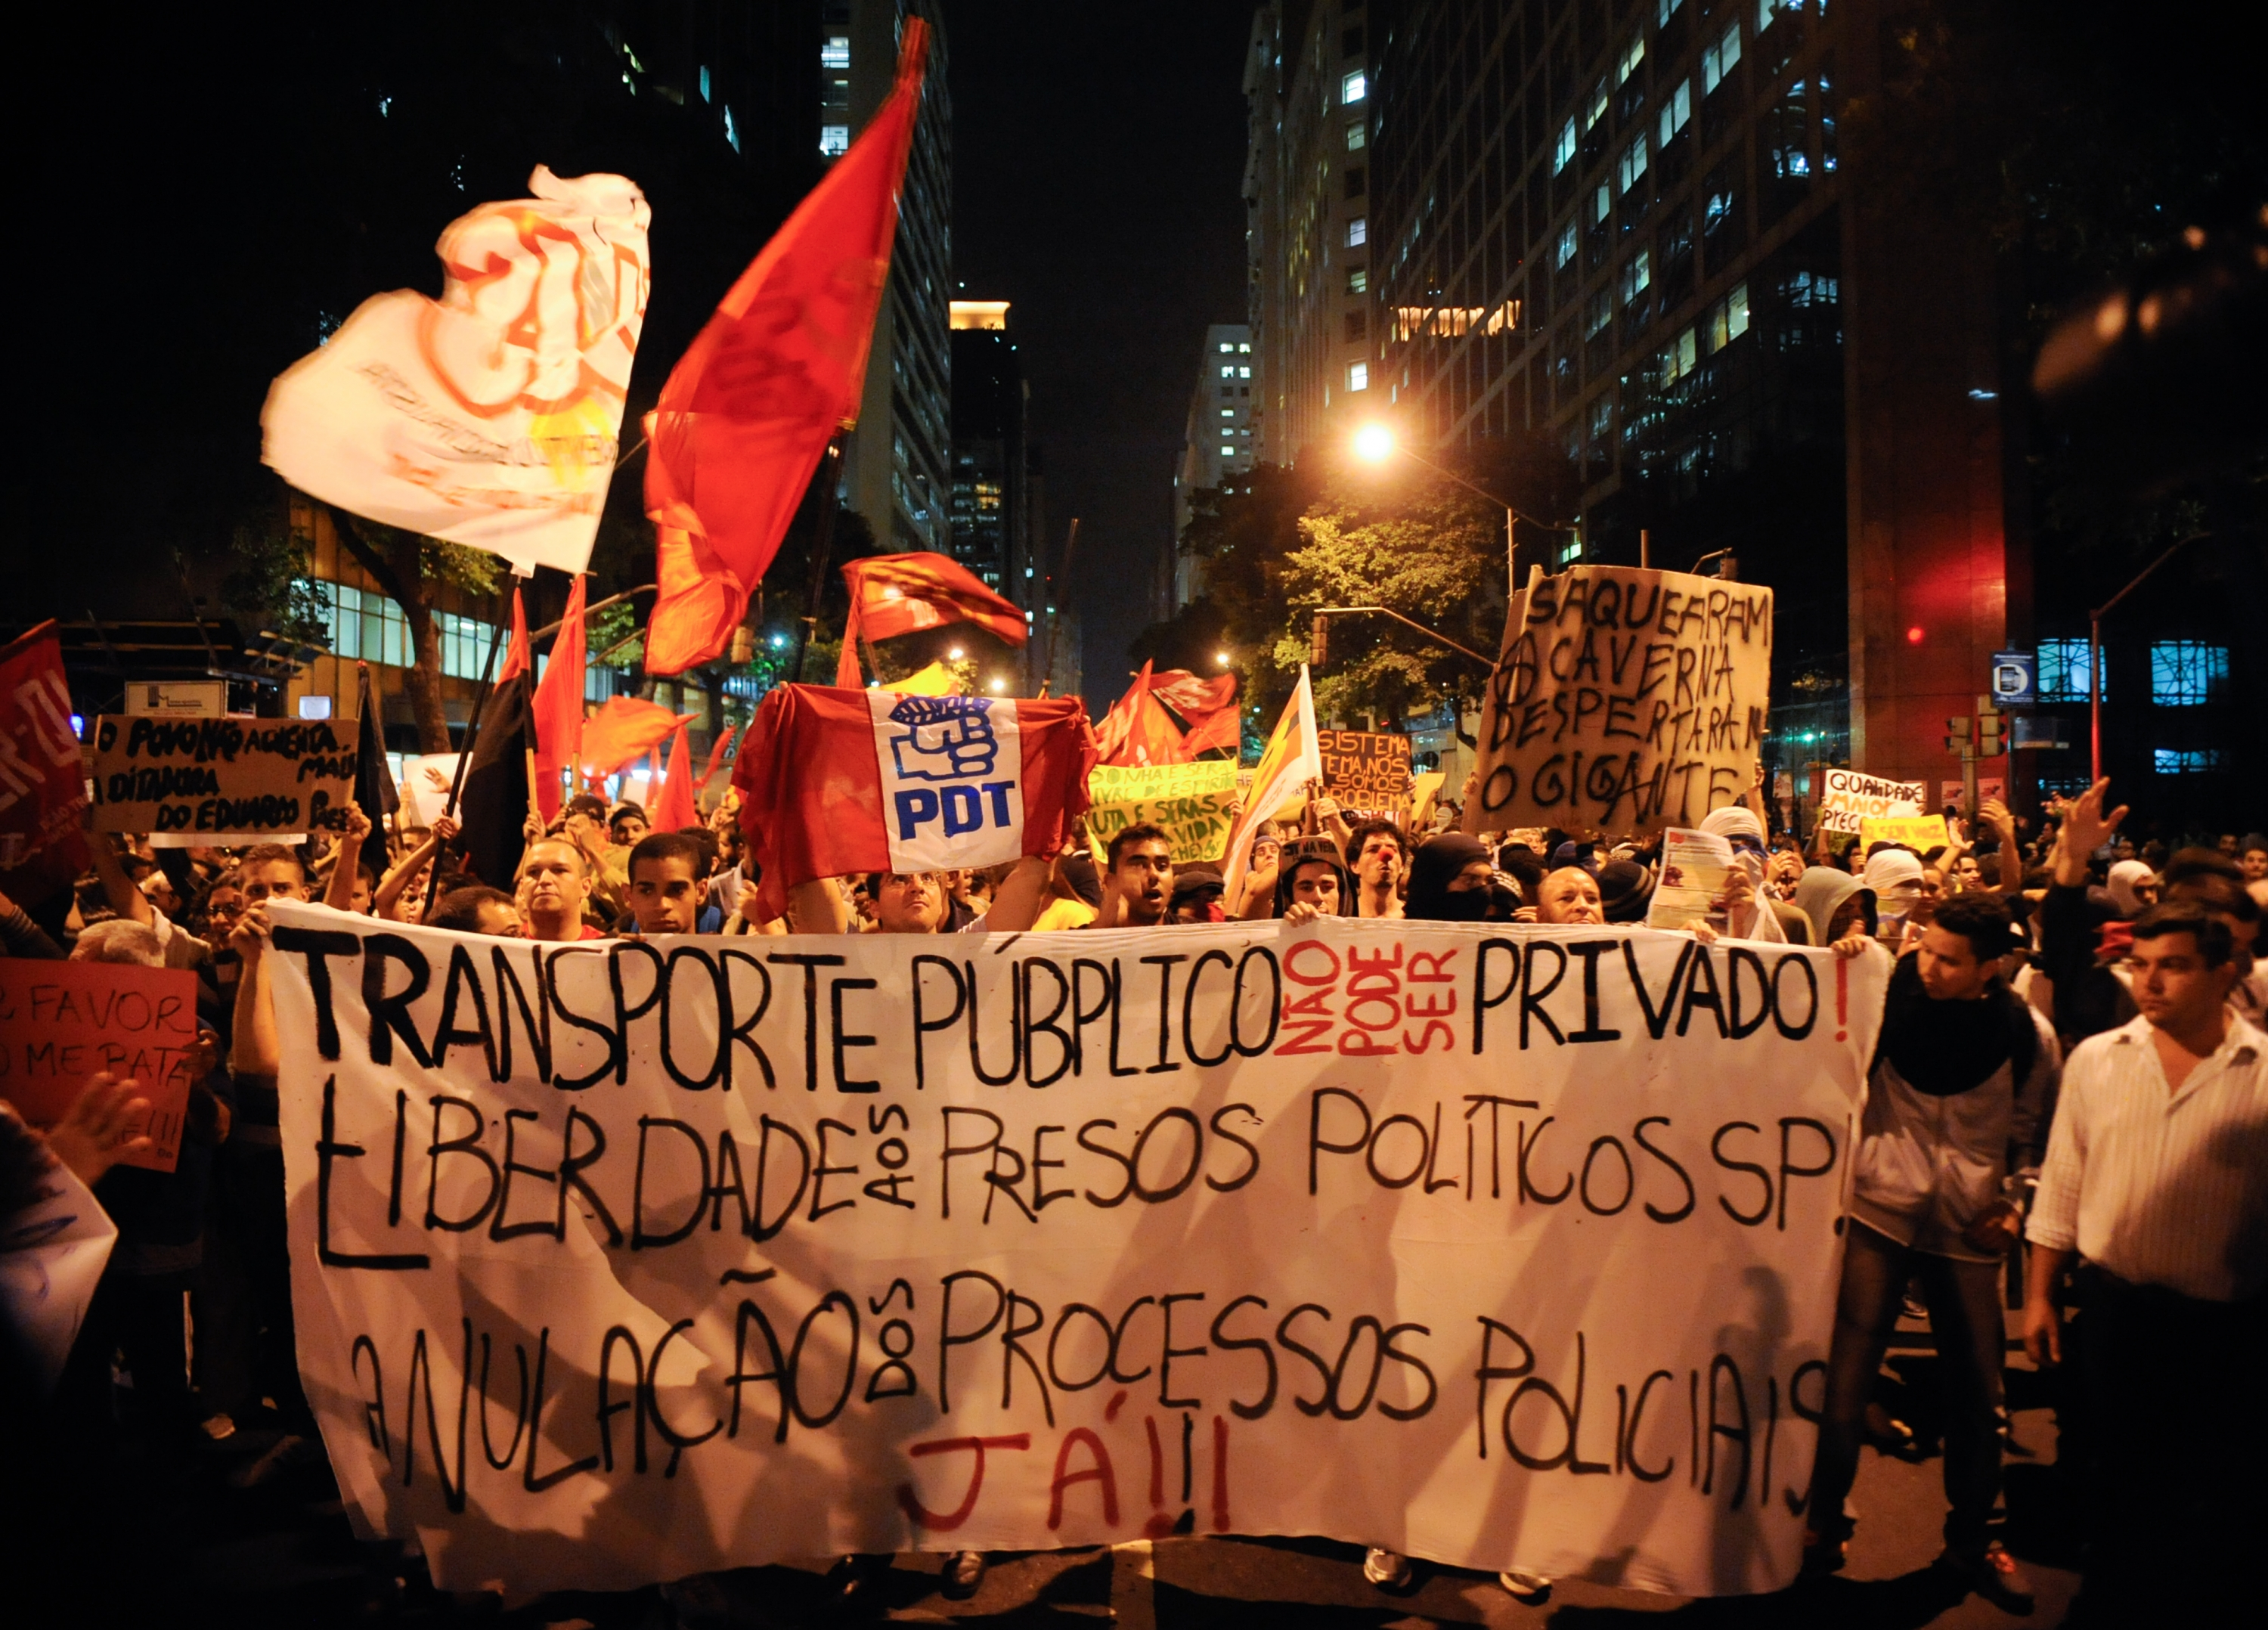 Protest 2013 File:2013 Brazilian Protests